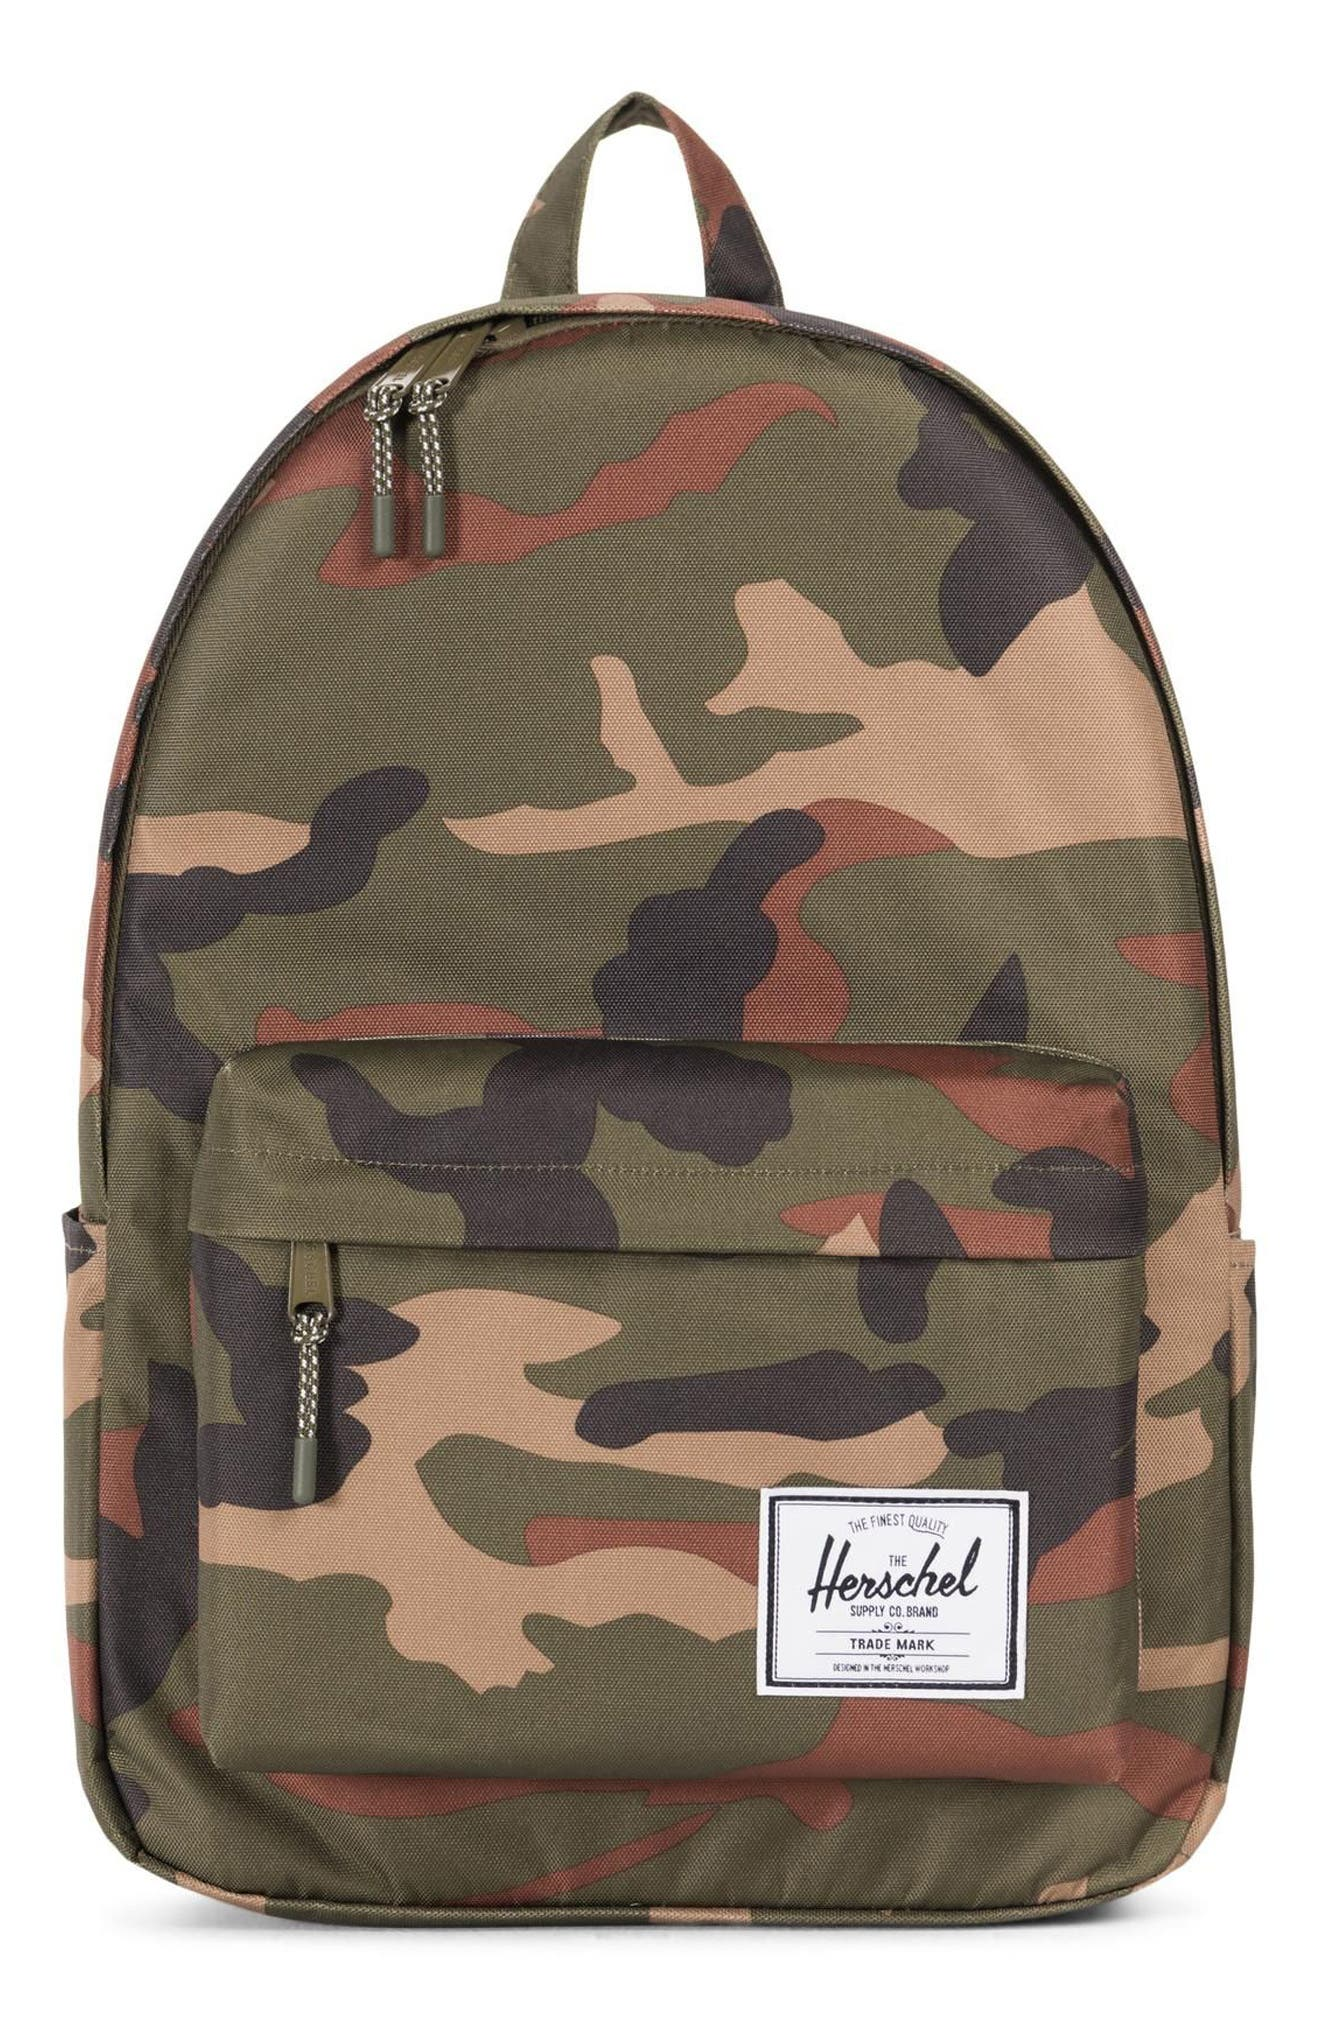 HERITAGE PRINT BACKPACK - GREEN